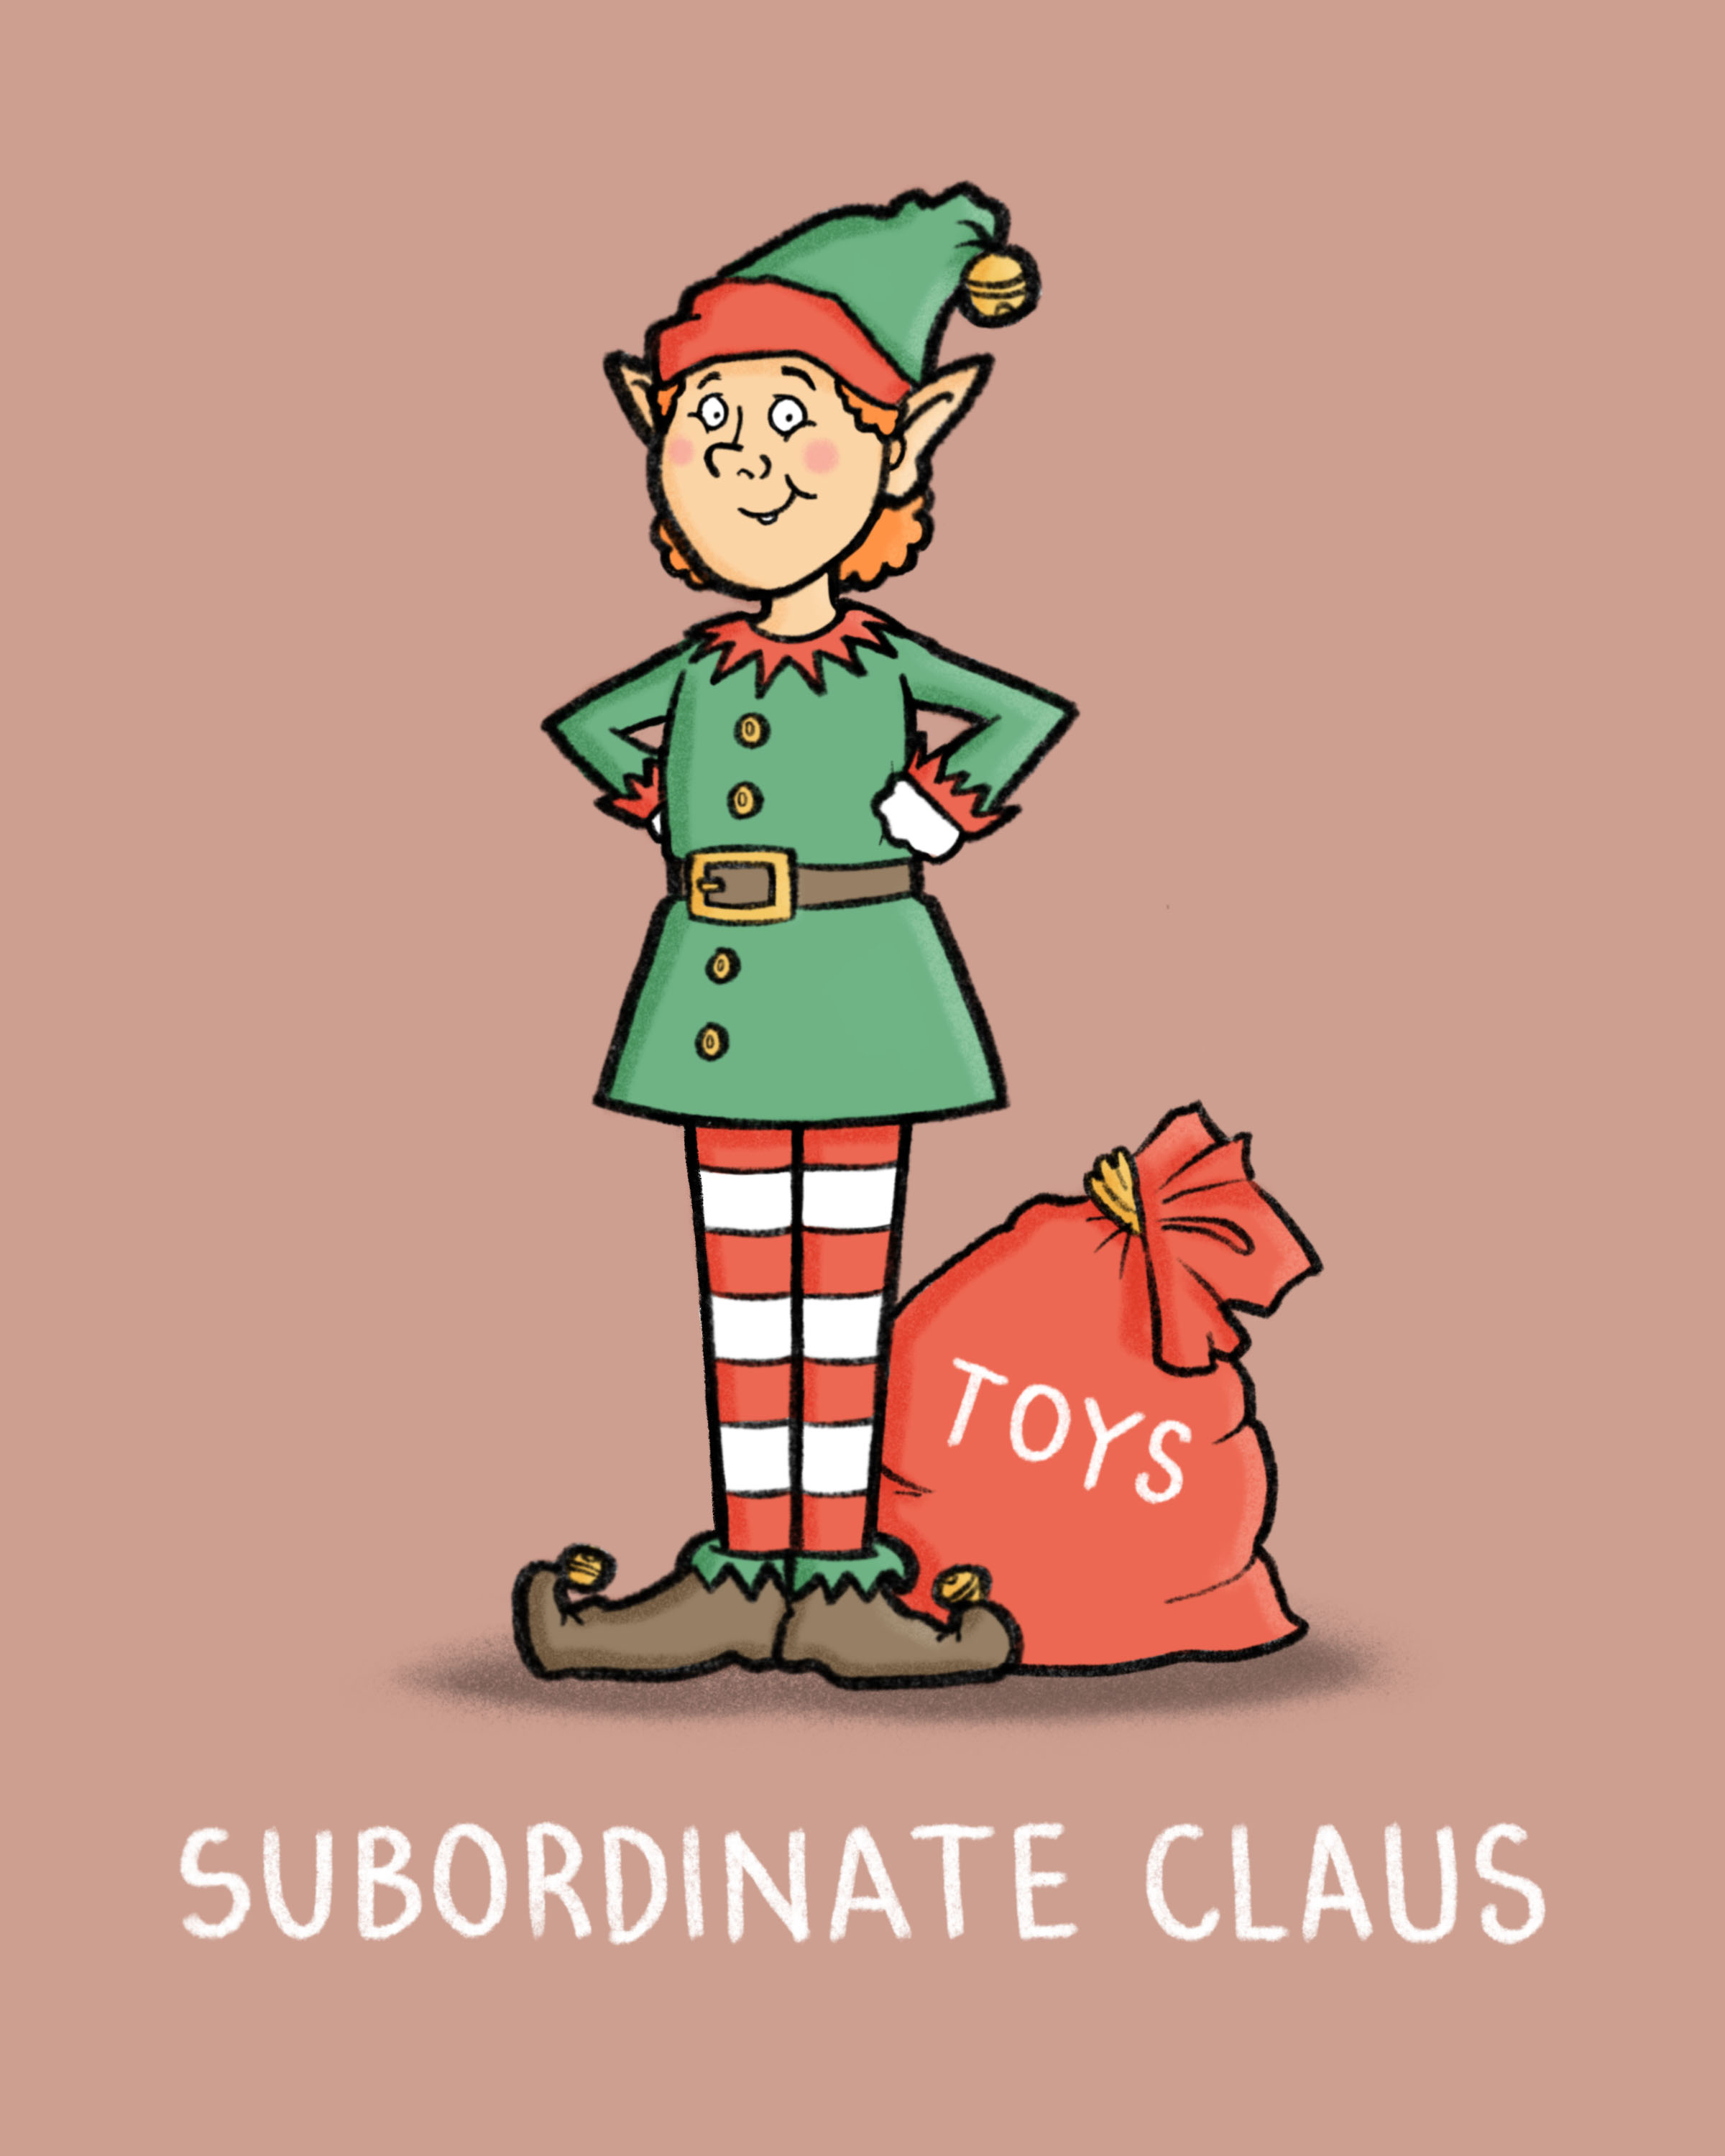 Subordinate Claus